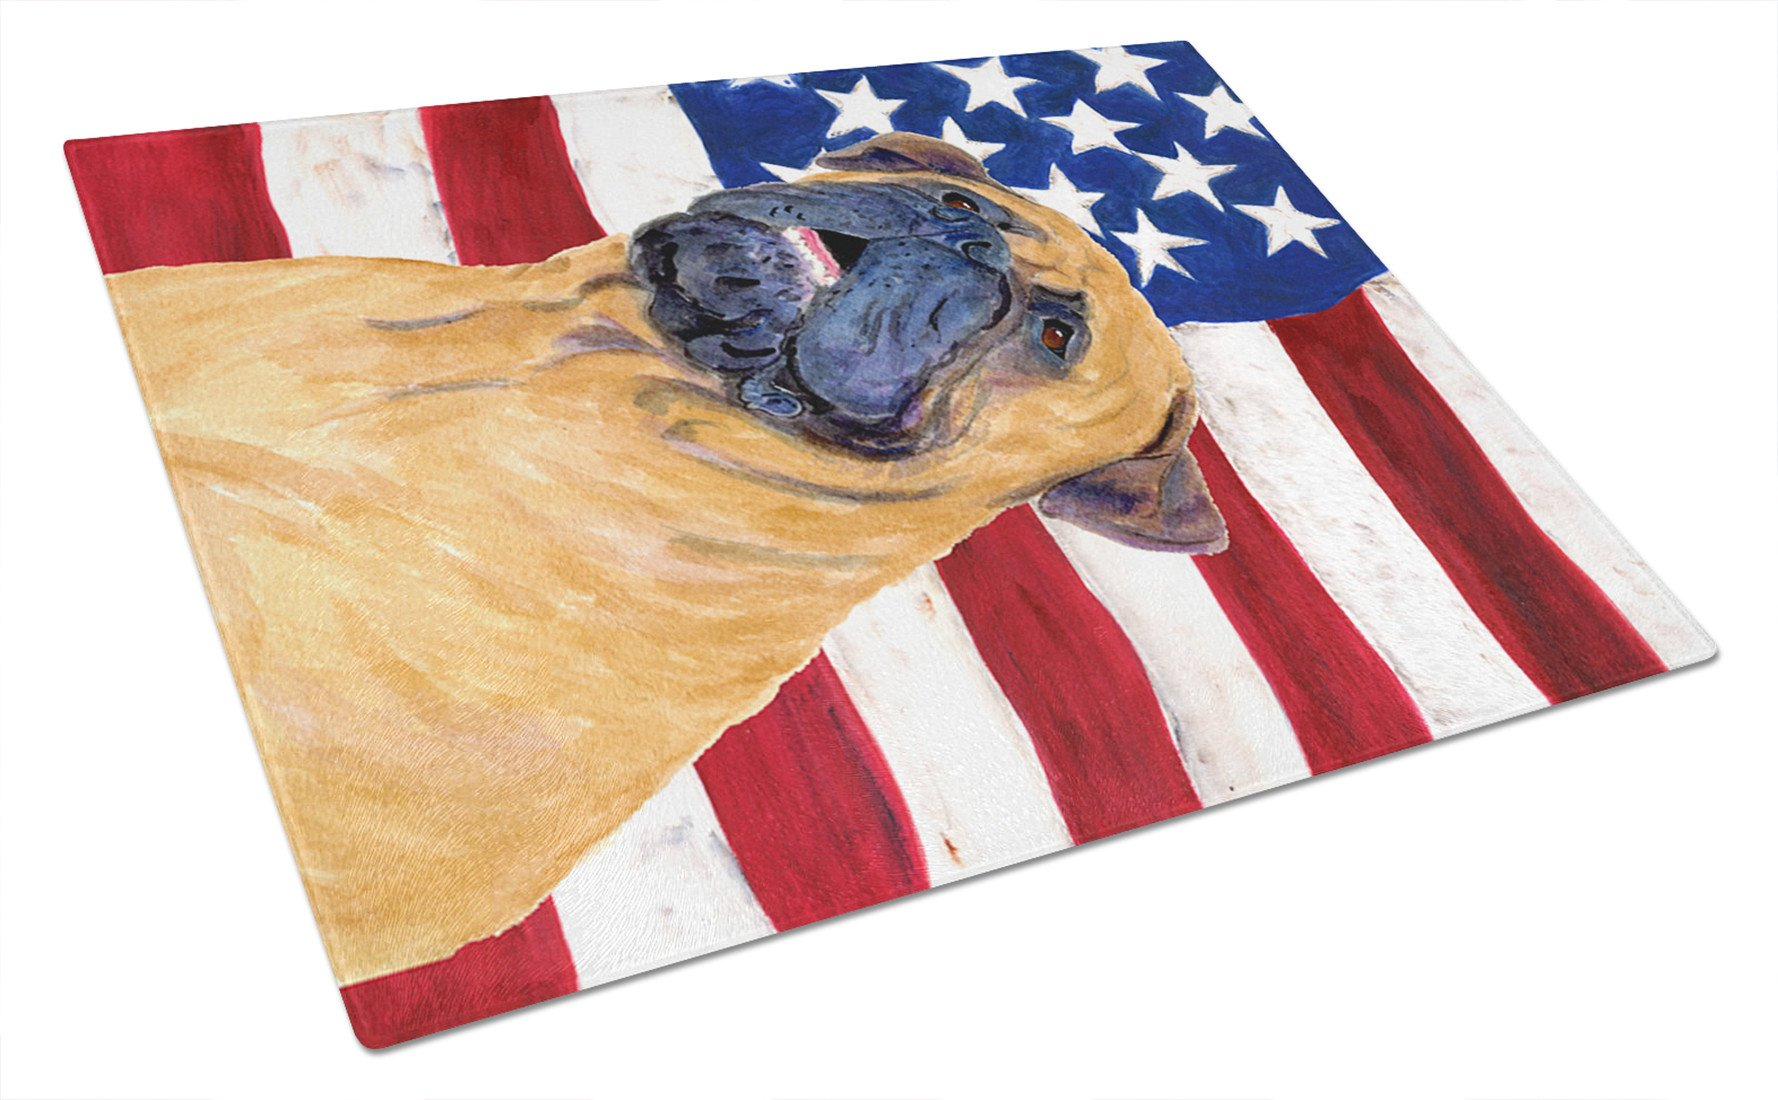 USA American Flag with Bullmastiff Glass Cutting Board Large by Caroline's Treasures